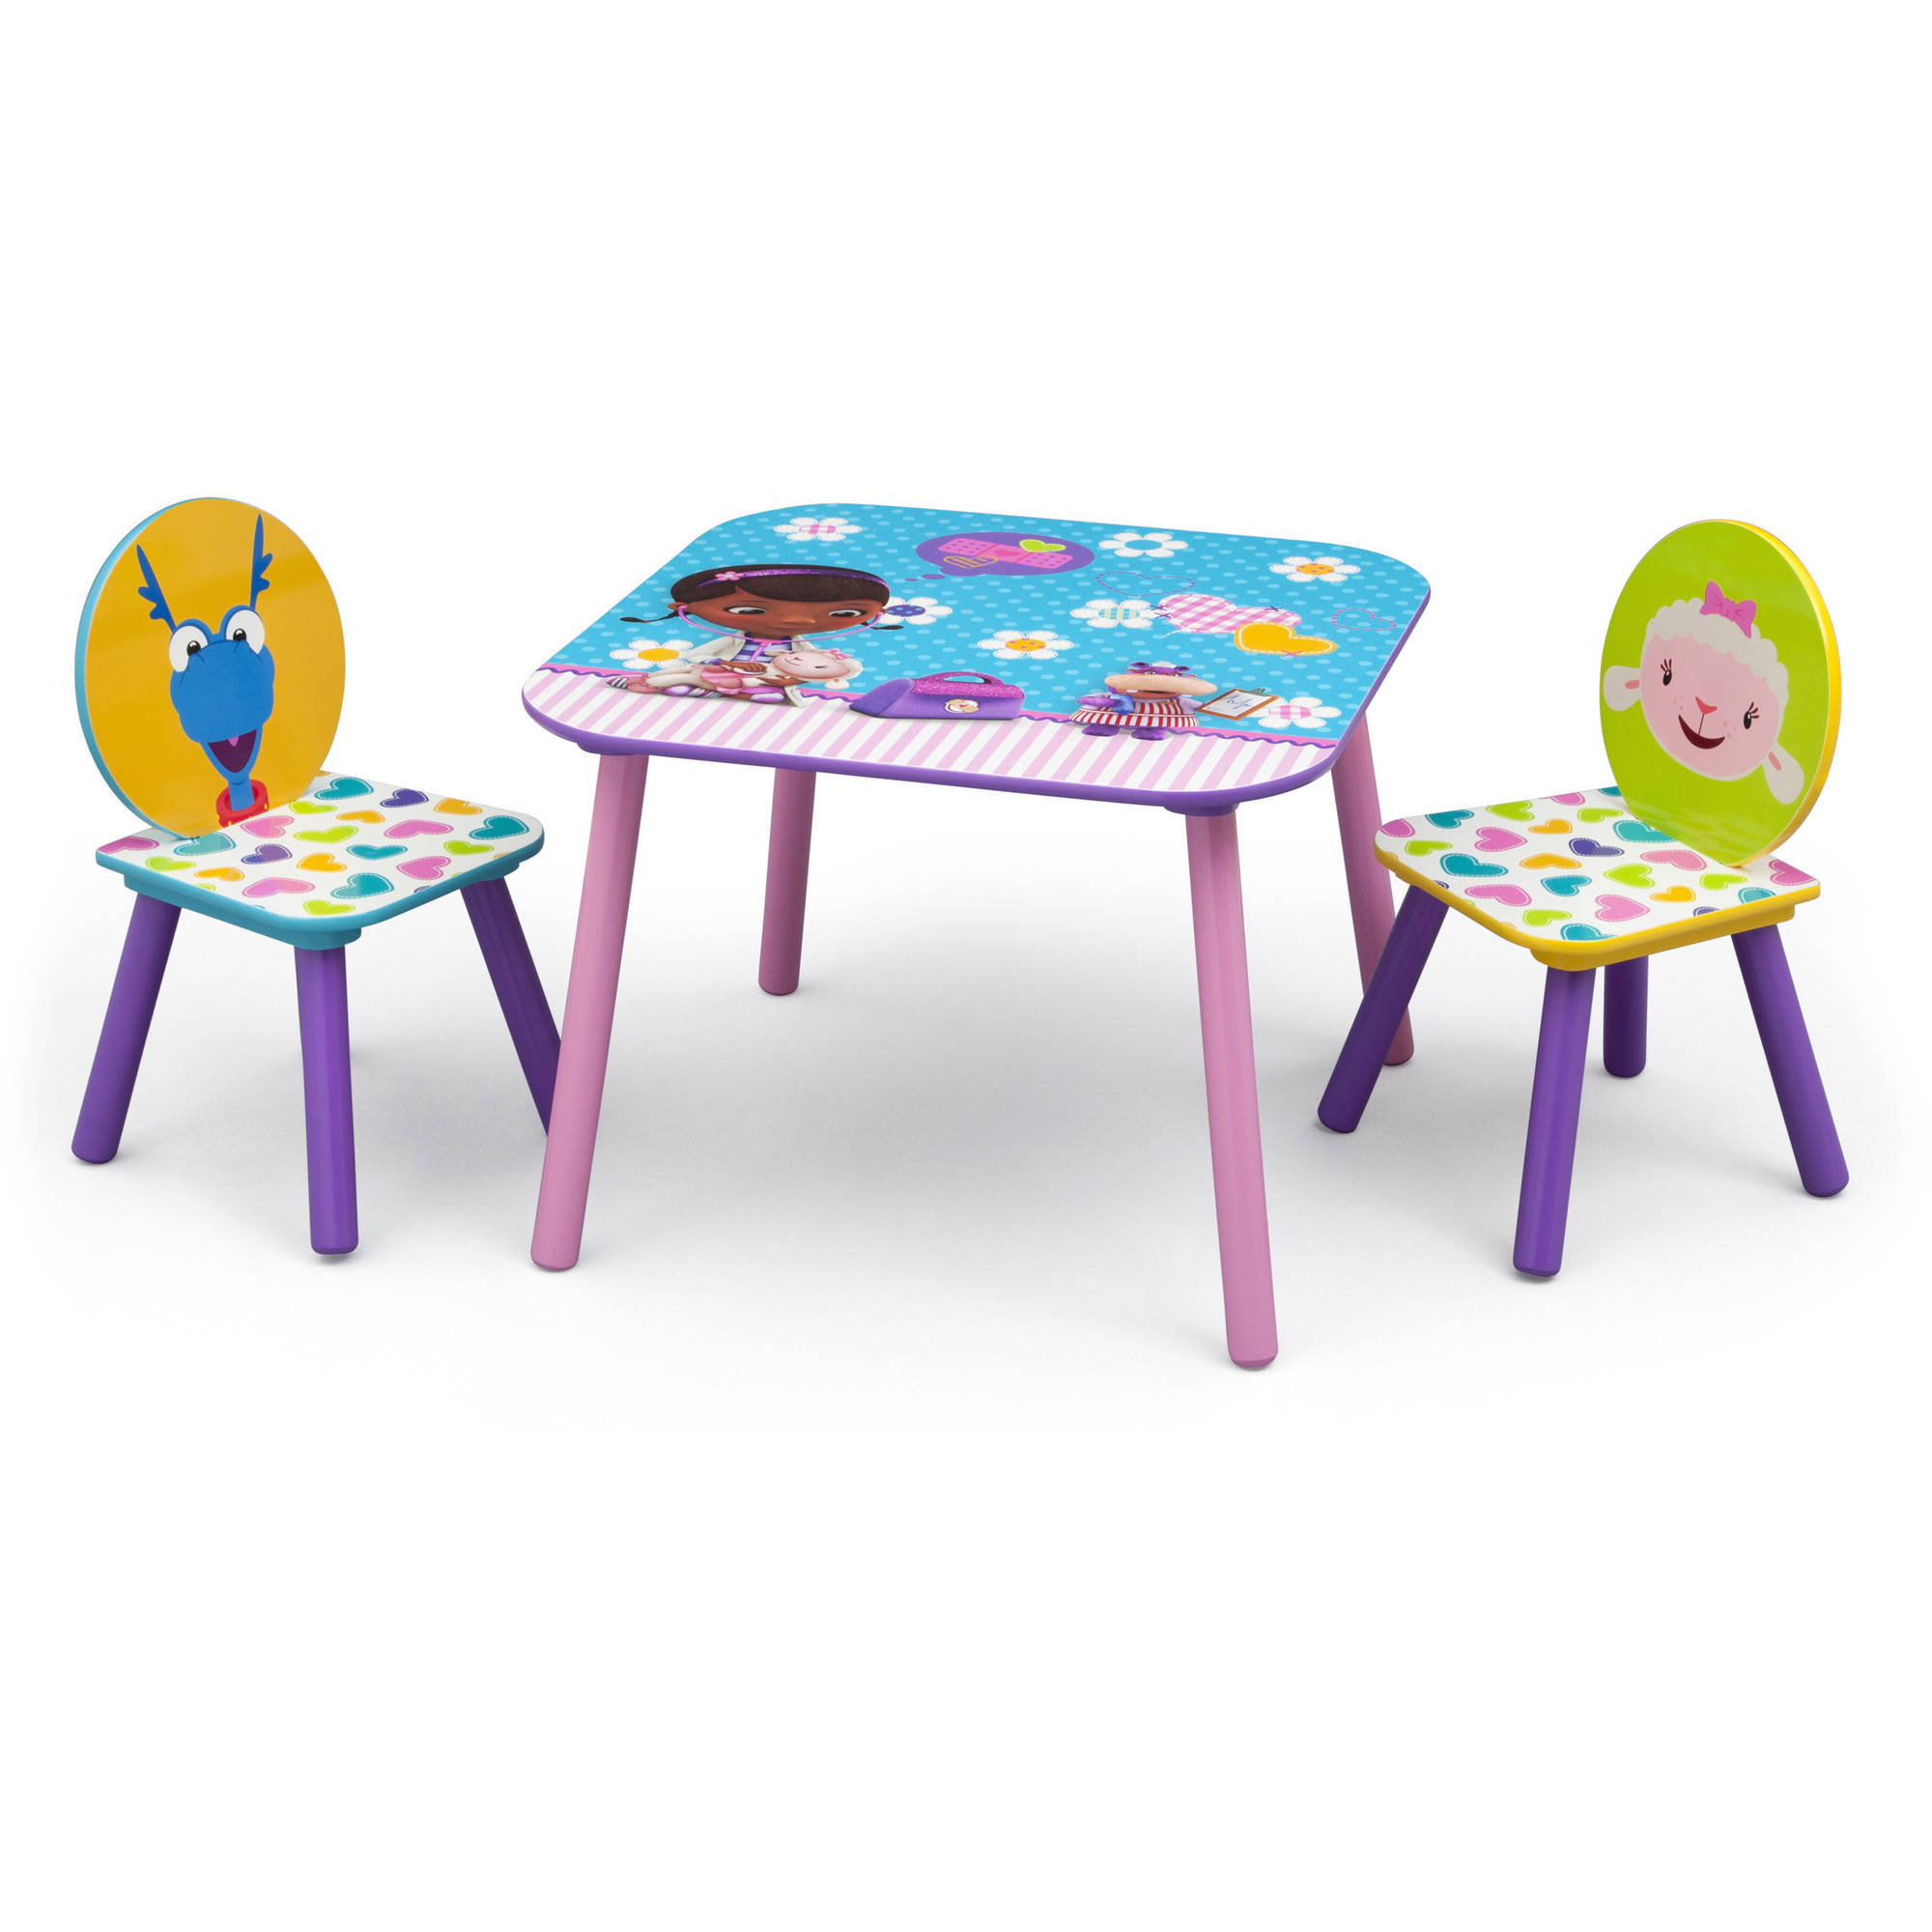 full chair room and cushion modern daycare table size owl chairs dinning for set picnic outdoor dining espresso shield edge toddler of eating furniture kids